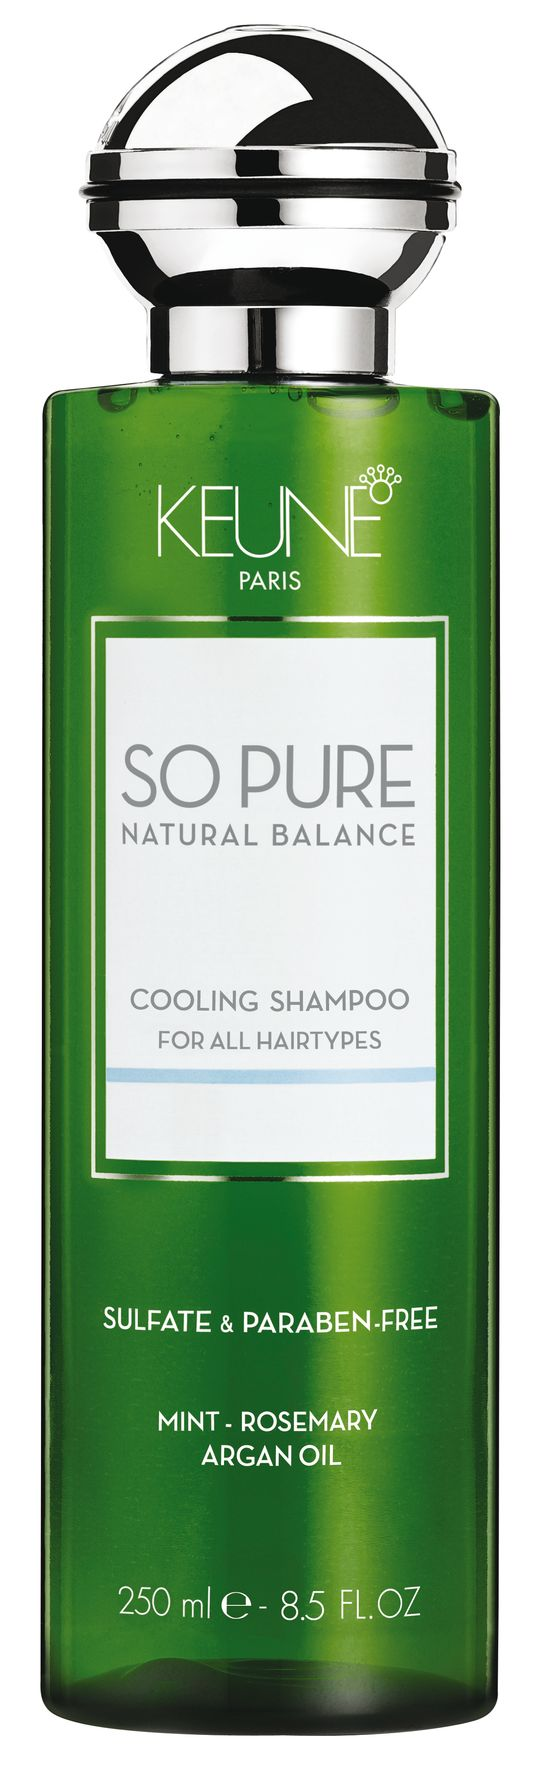 So Pure Cooling Shampoo